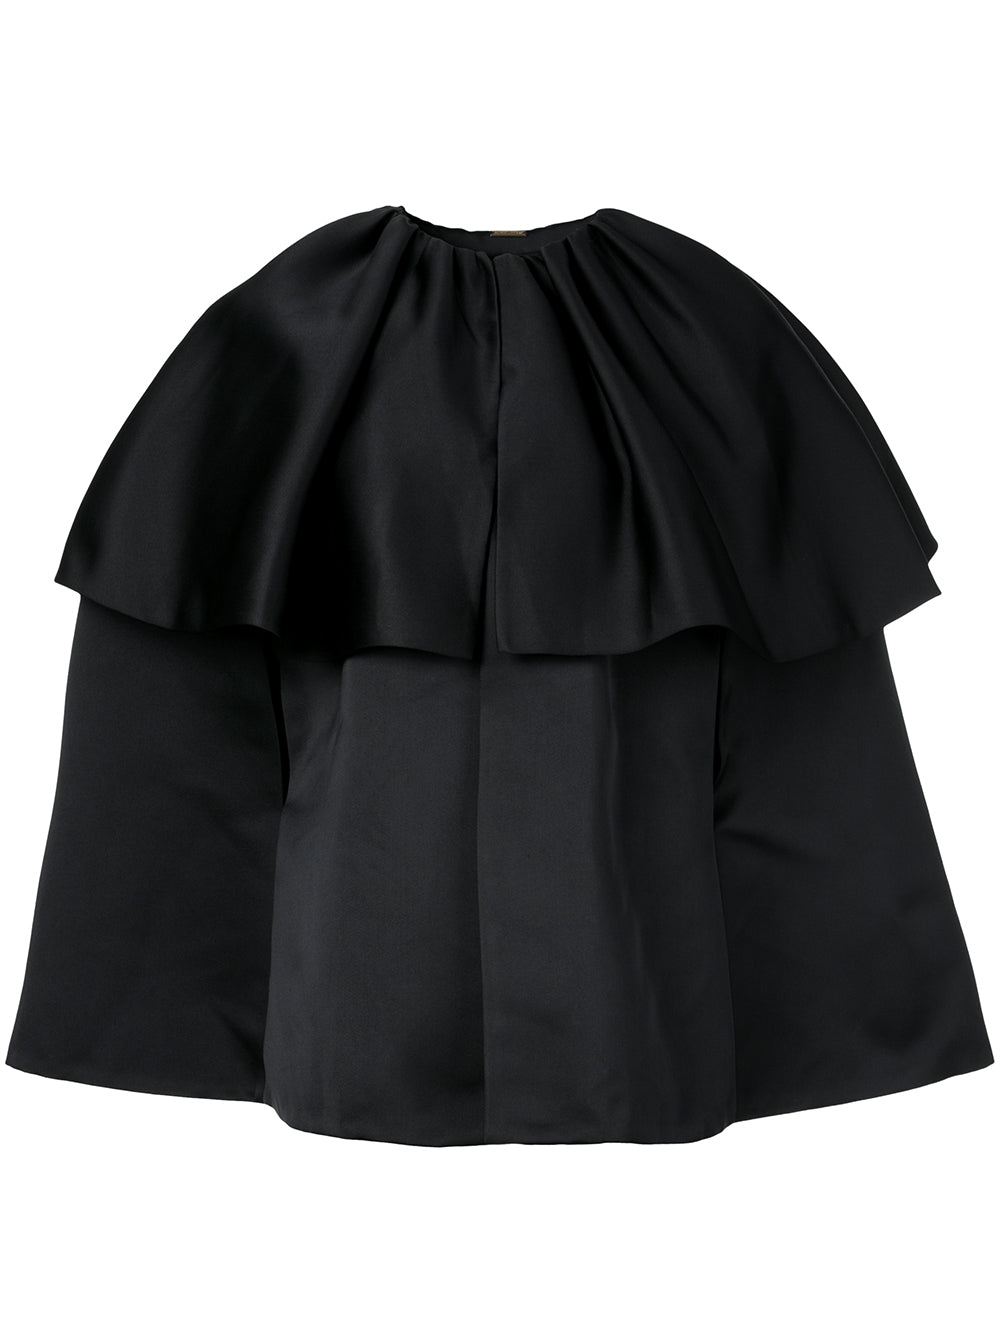 DUCHESS SATIN TIERED CAPE